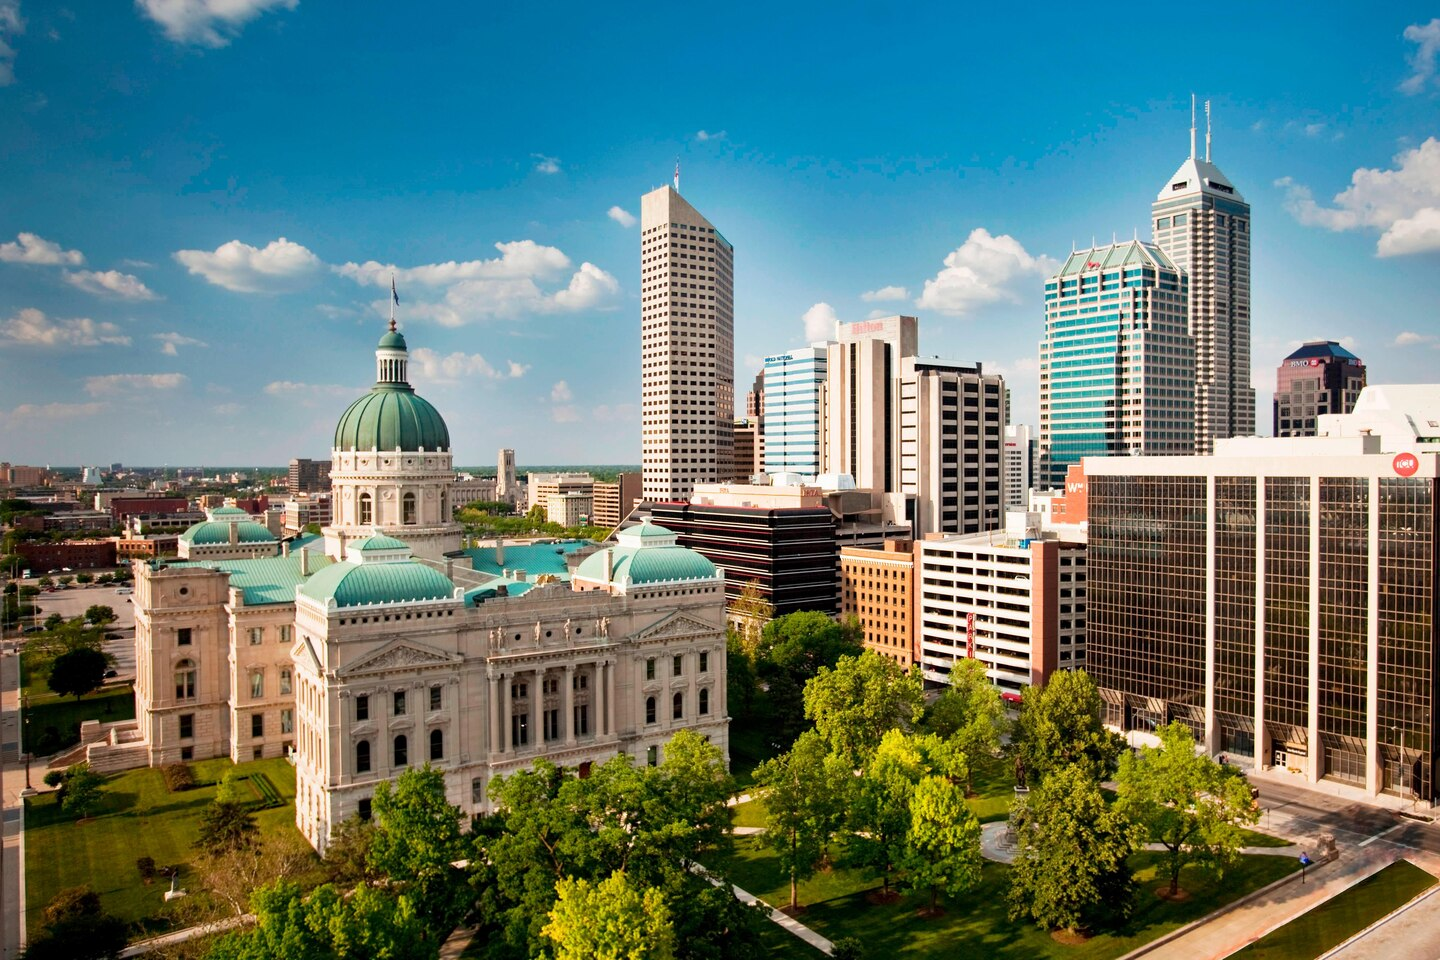 indwi-attraction-indianapolis-3307-hor-clsc